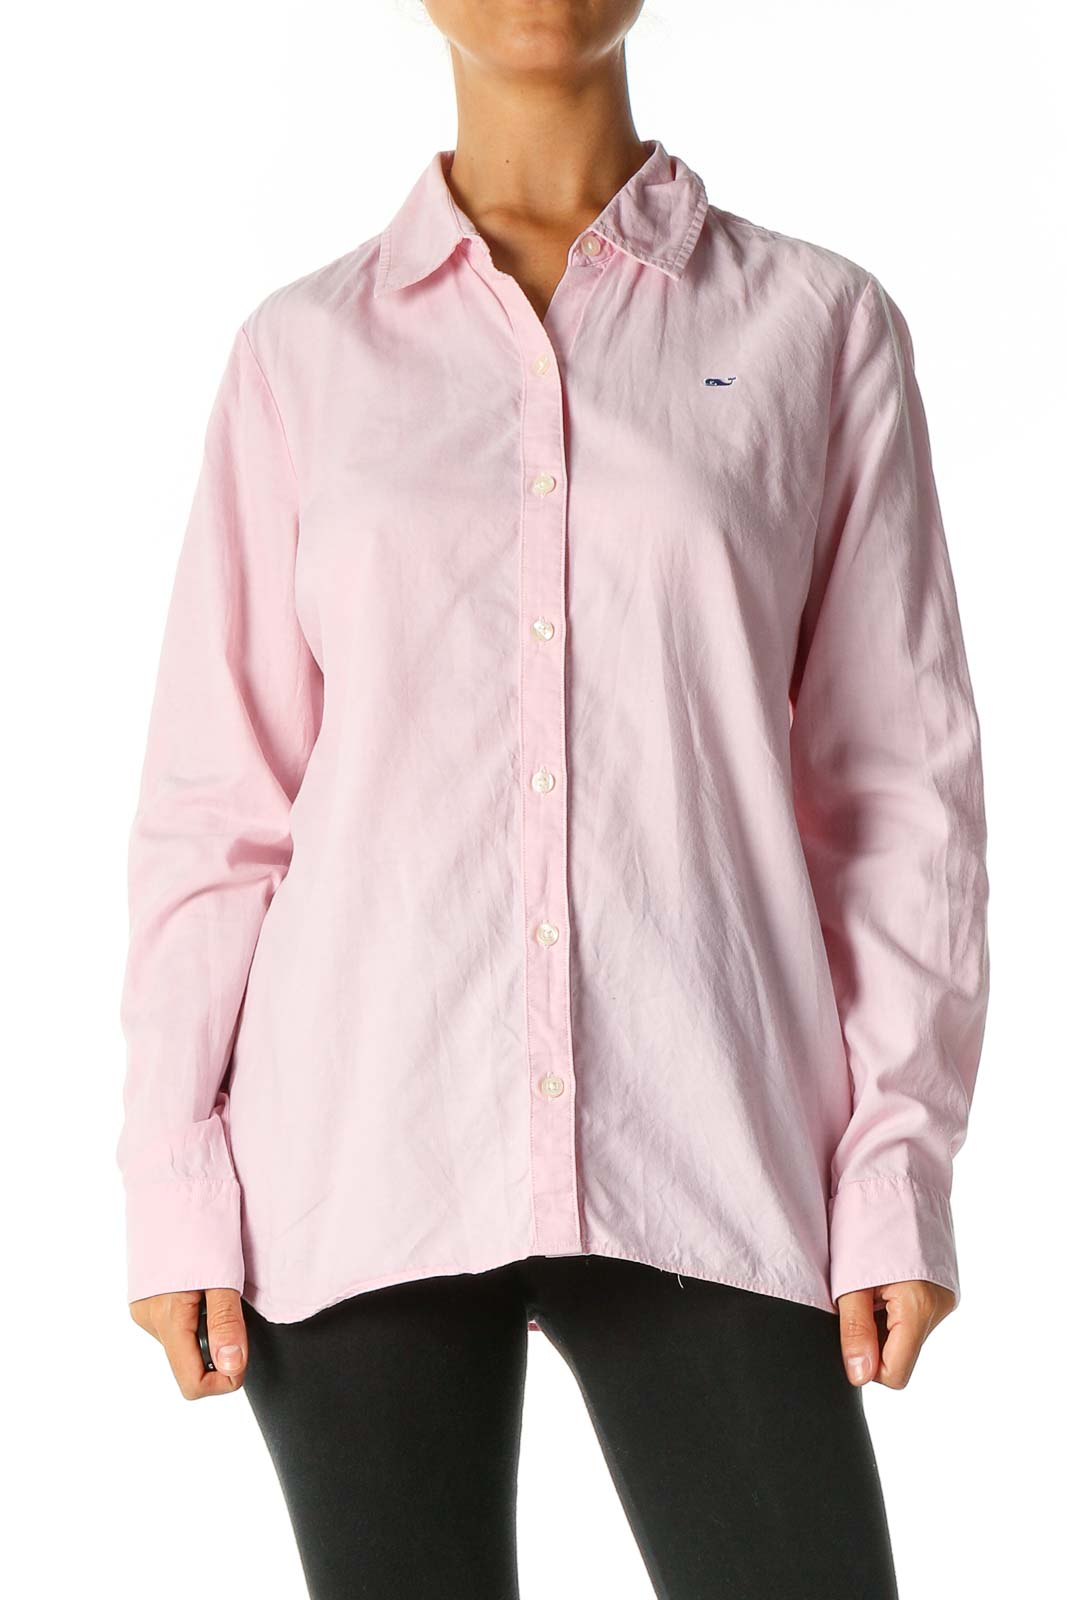 Pink Solid Work Shirt Front